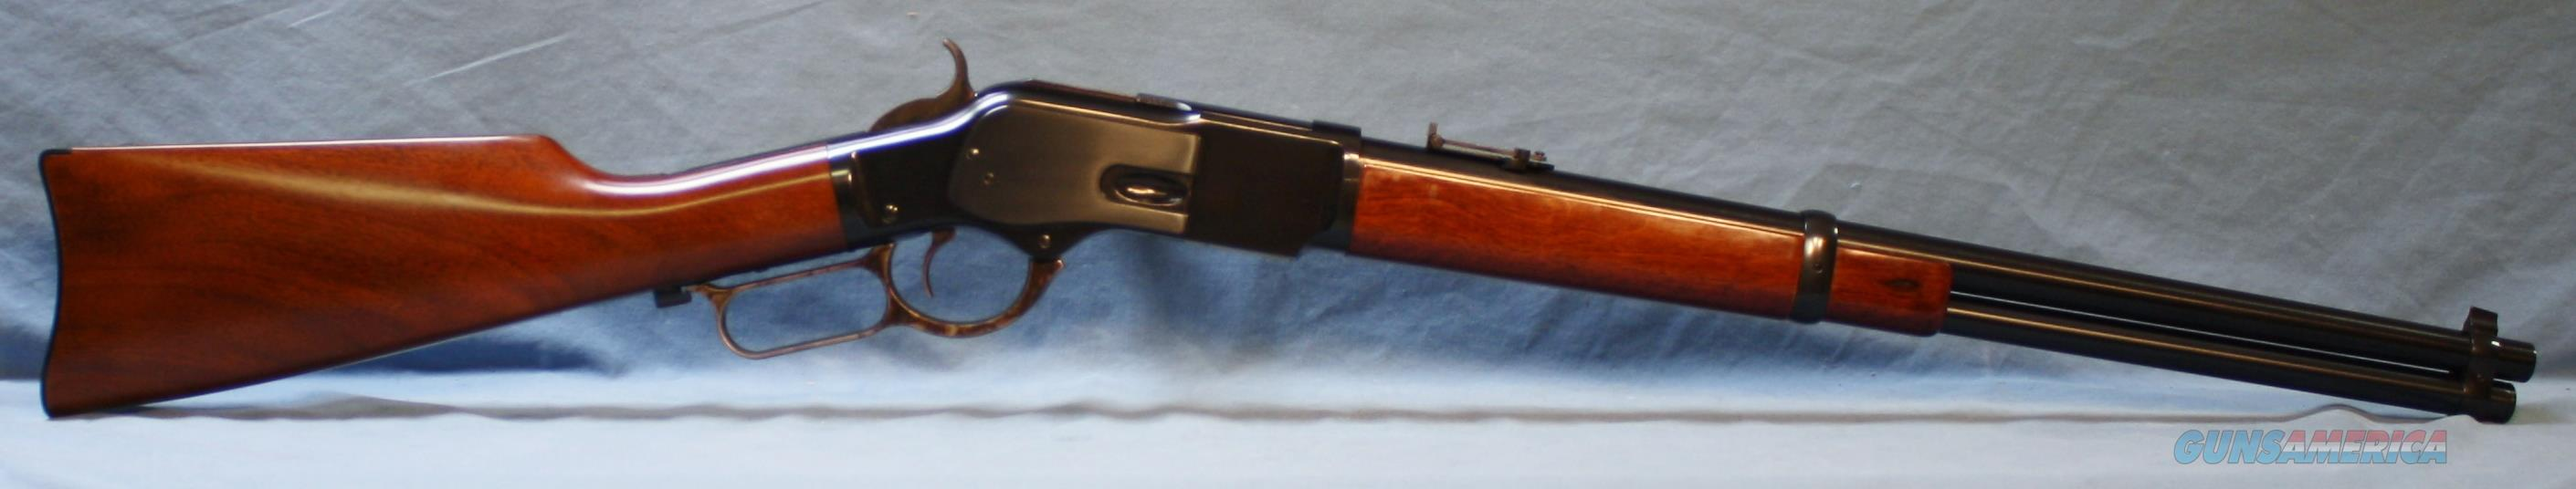 SALE! Uberti 1873 Lever Action Carbine, .45LC Free shipping to the lower 48!  Guns > Rifles > Uberti Rifles > Lever Action